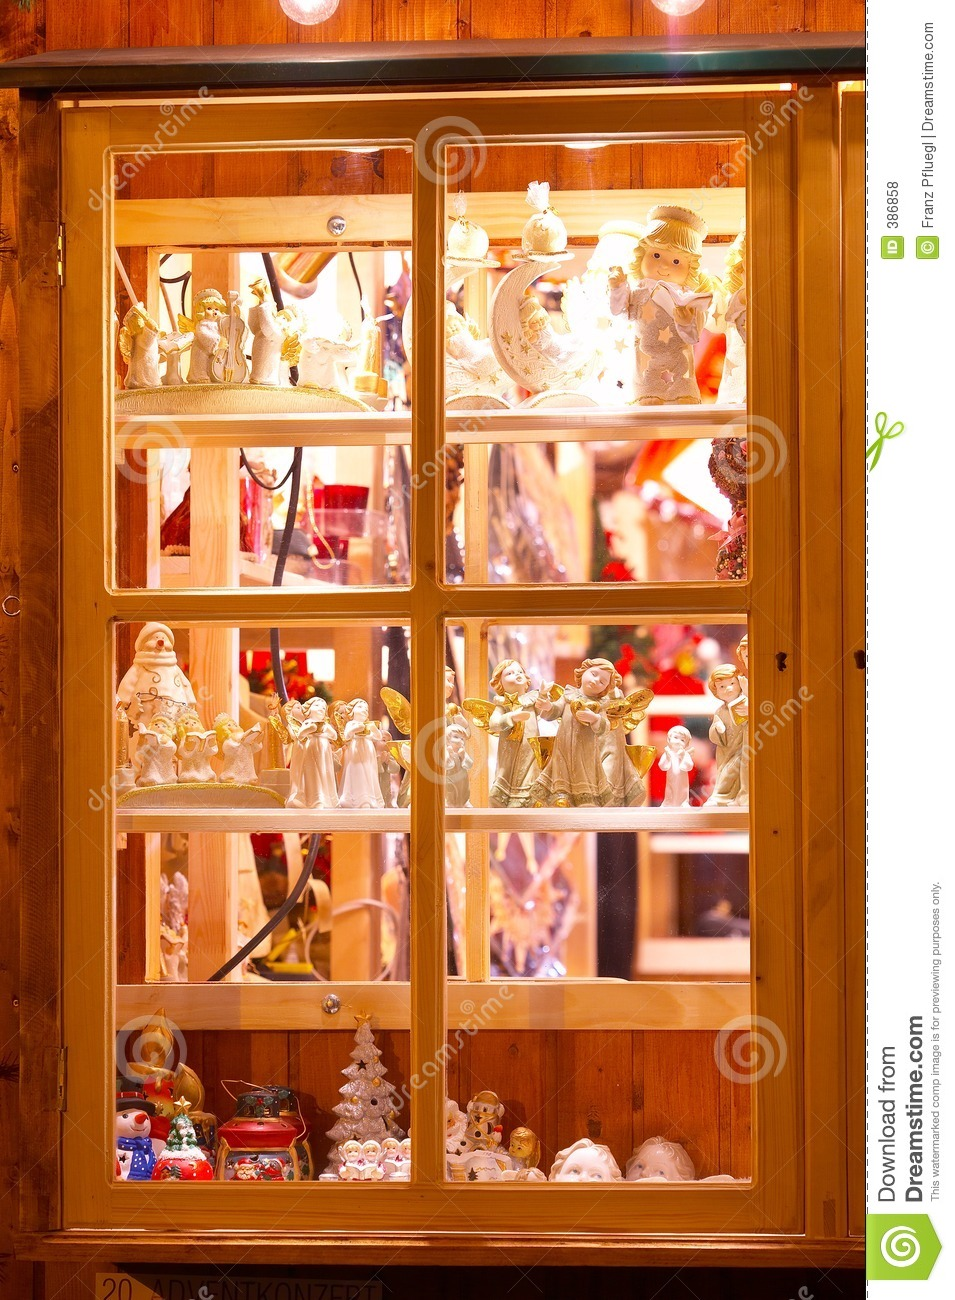 Shop Window With Christmas Decoration Fenster Mit Weihnachtlicher Dekoration Stock Photo Image Of Weihnachten Christkindlmarkt 386858